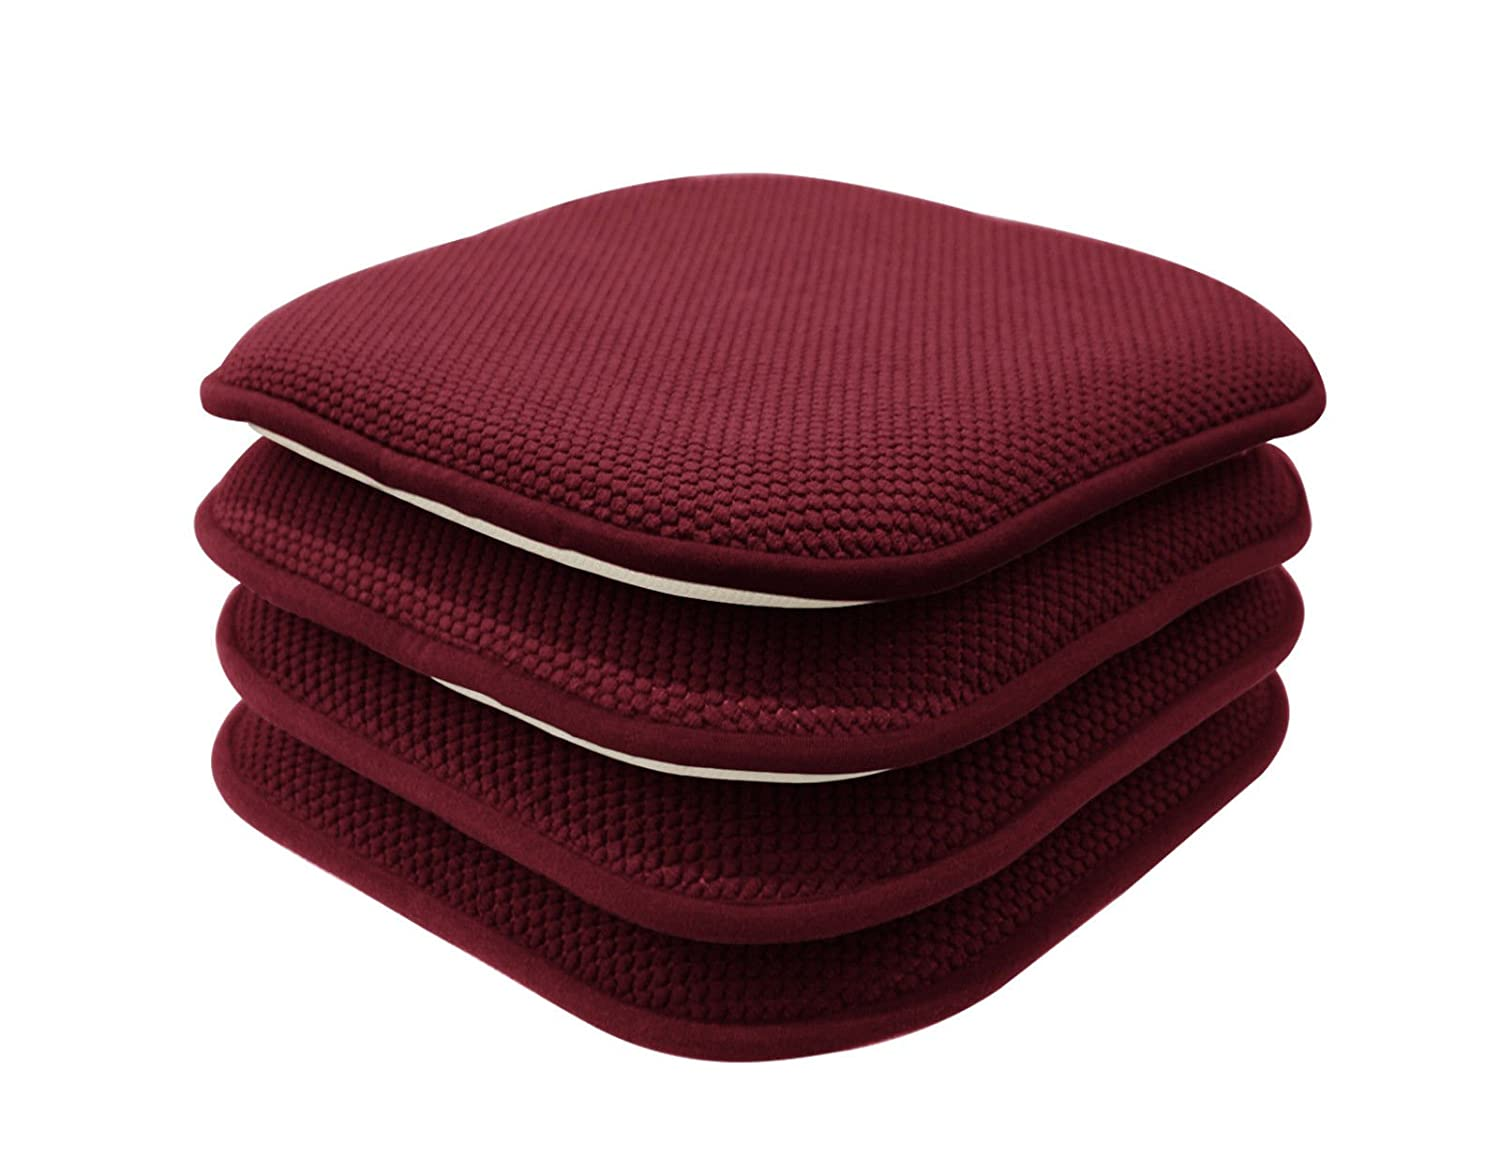 GoodGram 4 Pack Non Slip Ultra Soft Chenille Honeycomb Premium Comfort Memory Foam Chair Pads/Cushions - Assorted Colors (Country Burgundy)